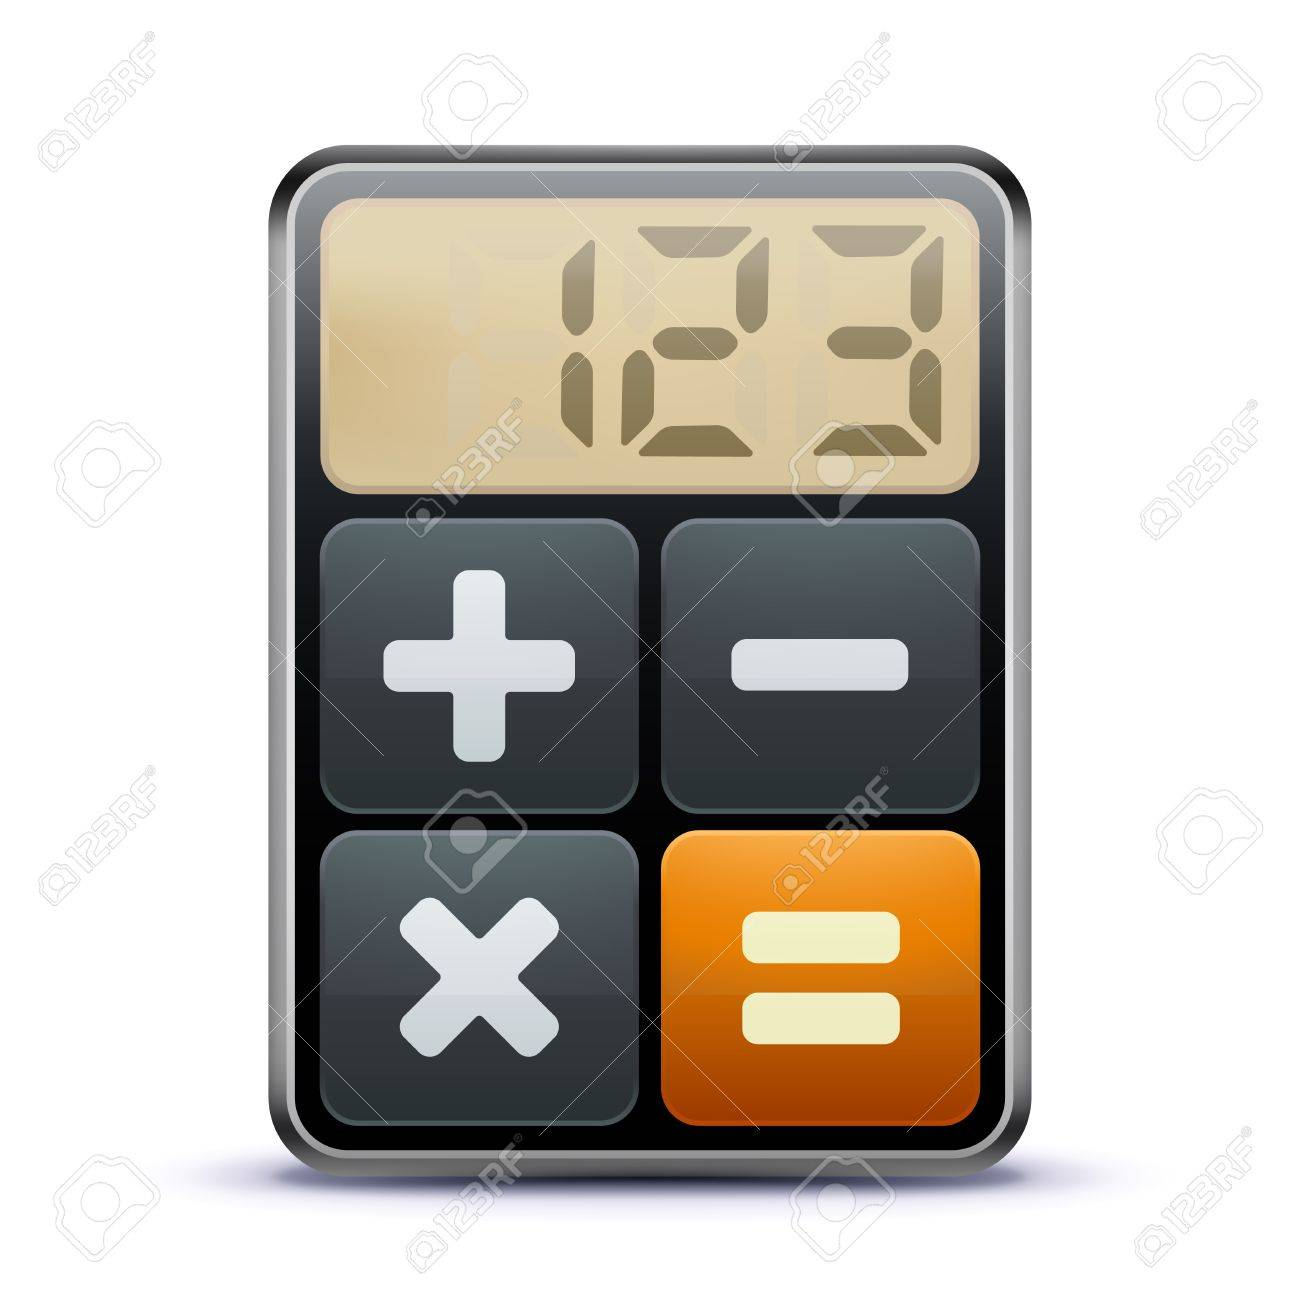 Vector illustration of business concept with calculator icon Stock Vector - 11514095